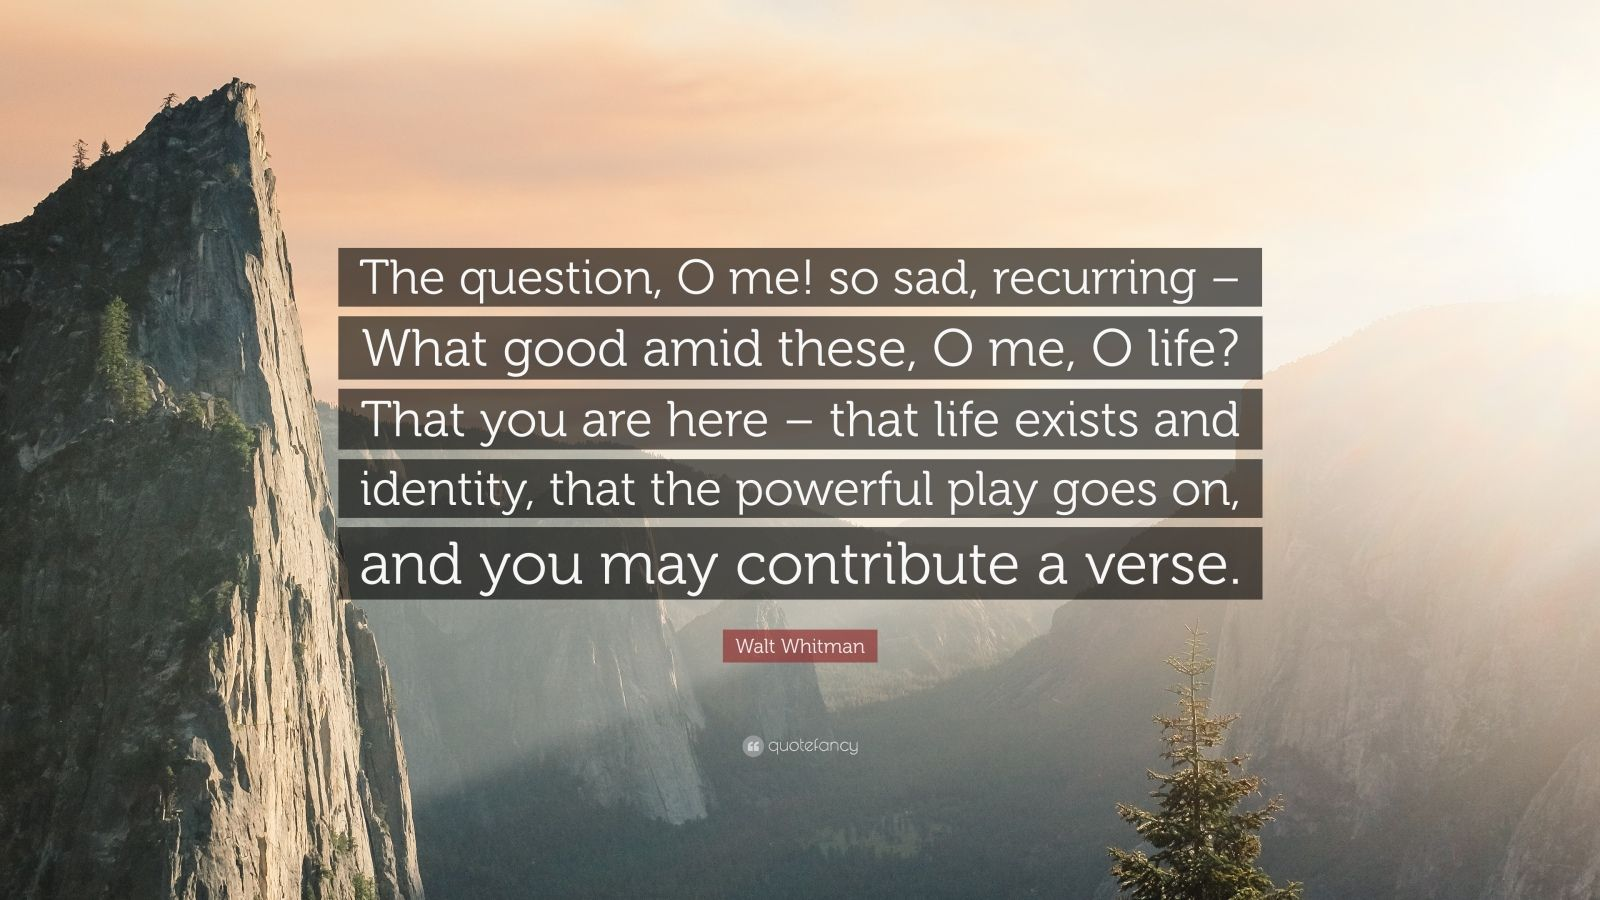 Quote by Walt Whitman The powerful play goes on and you